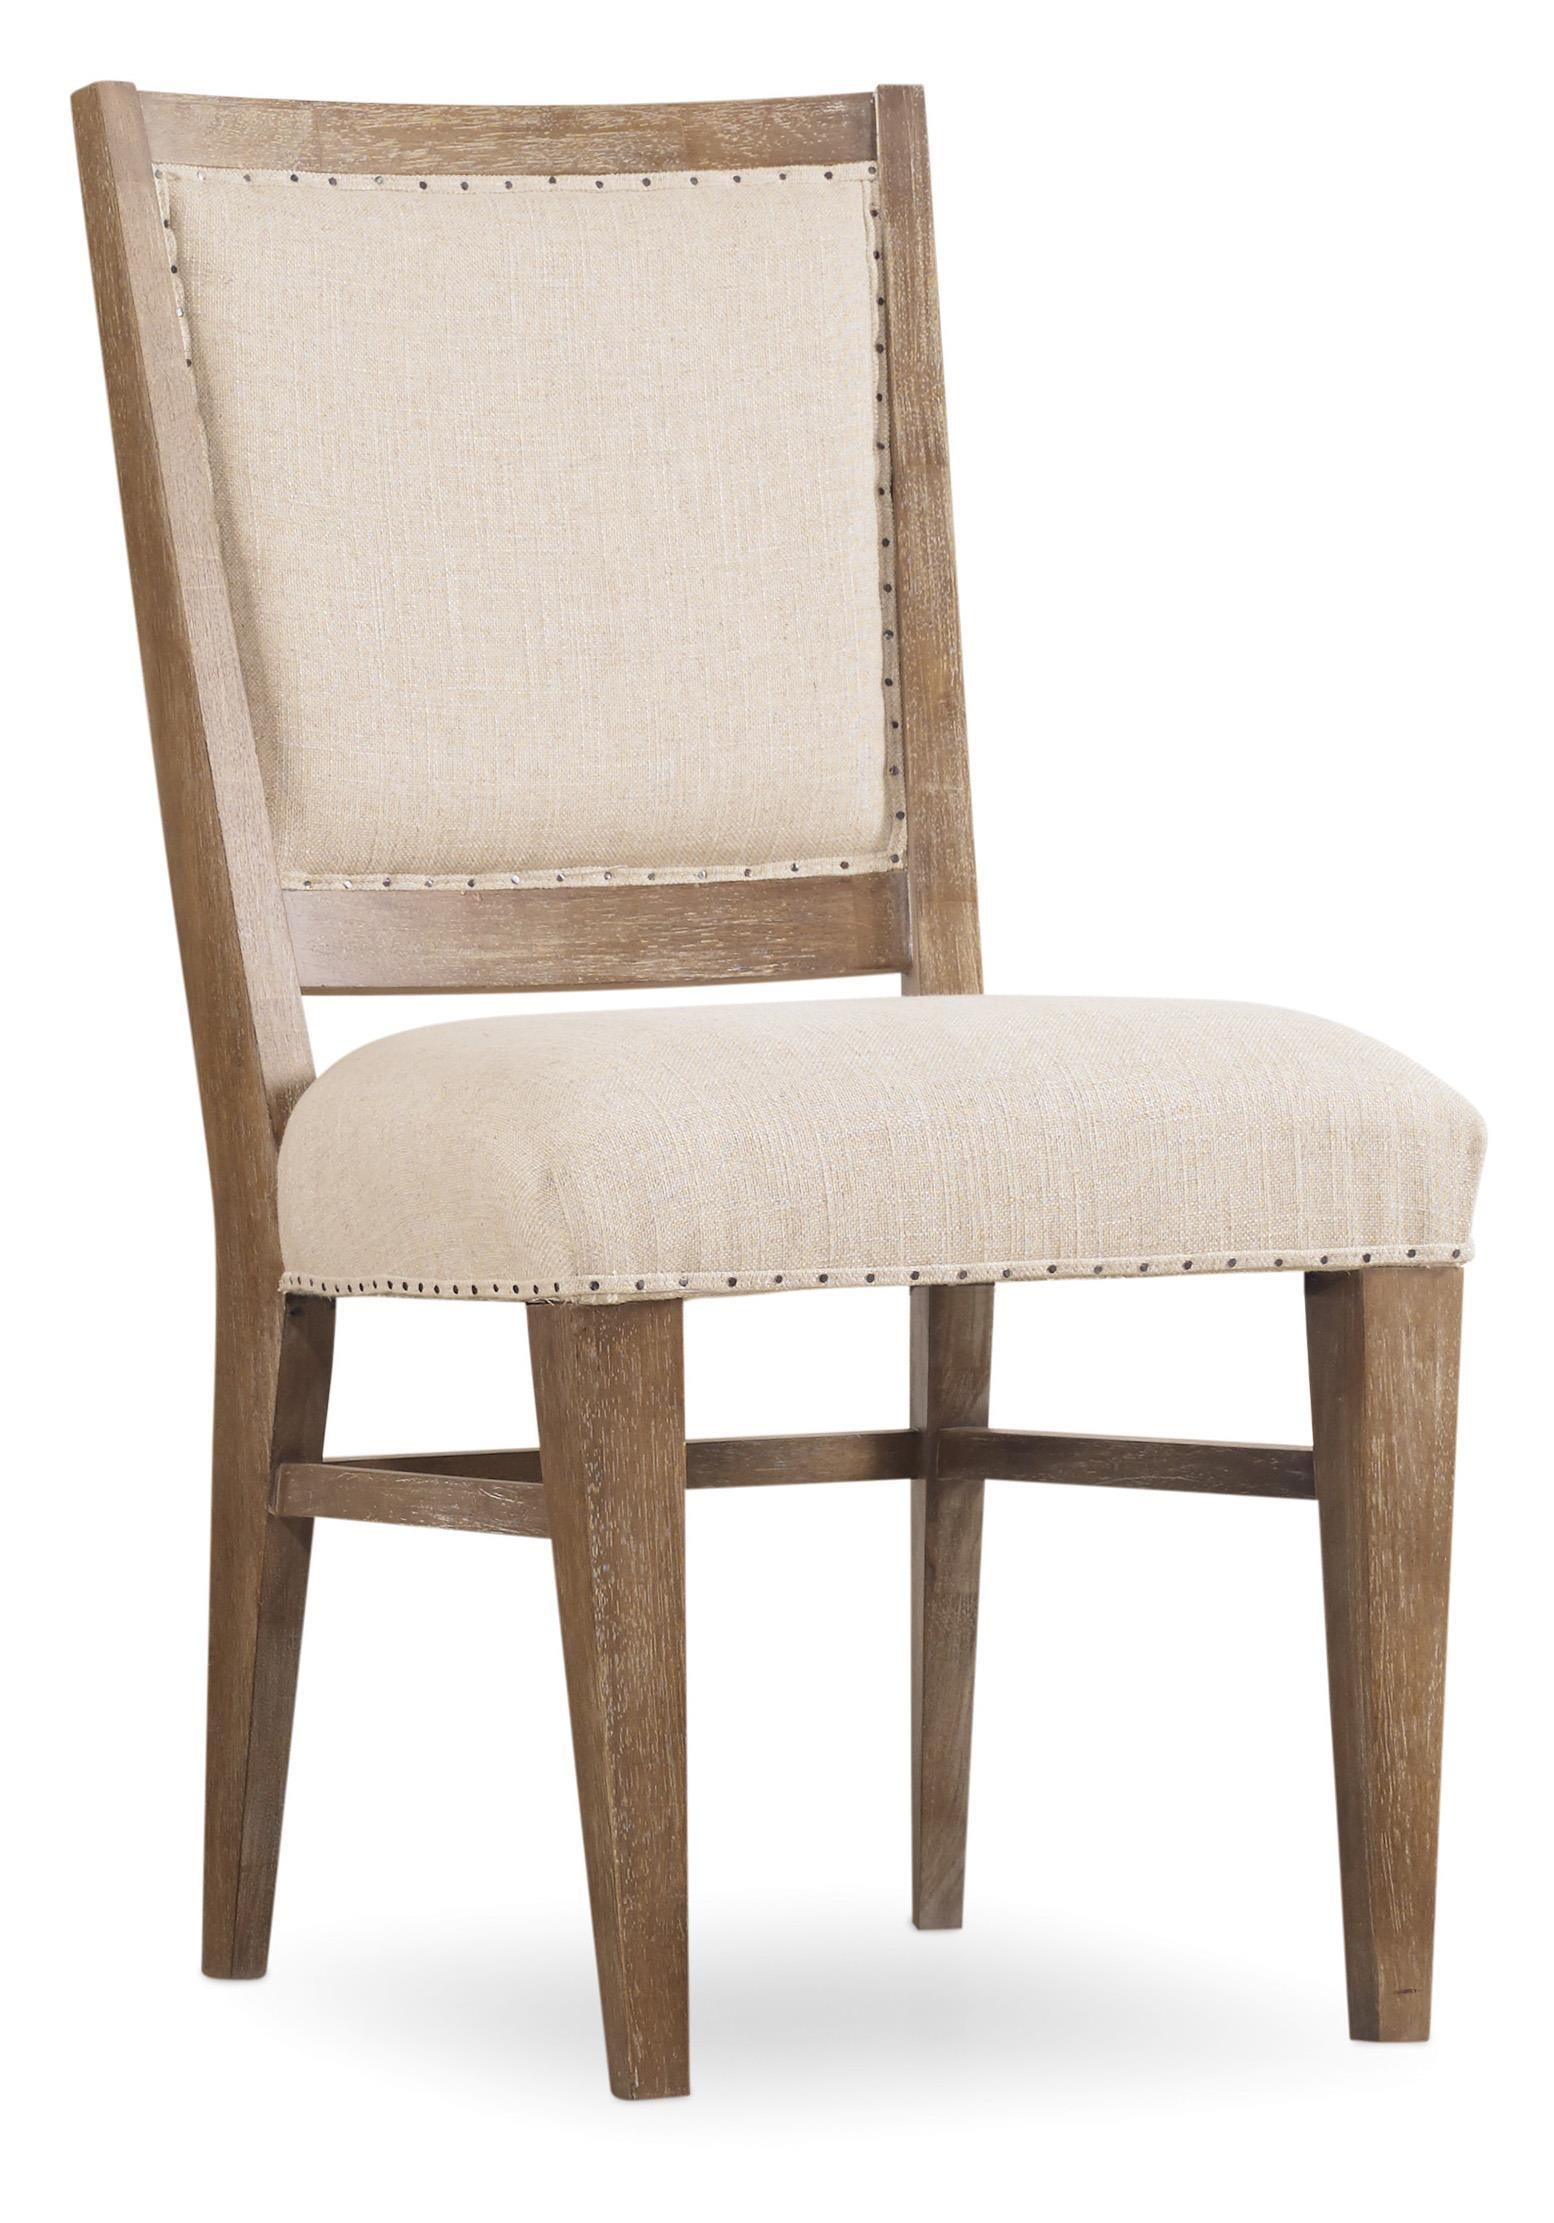 upholstered chair with nailhead trim maple dining room chairs hooker furniture studio 7h 5382 75410 stol side